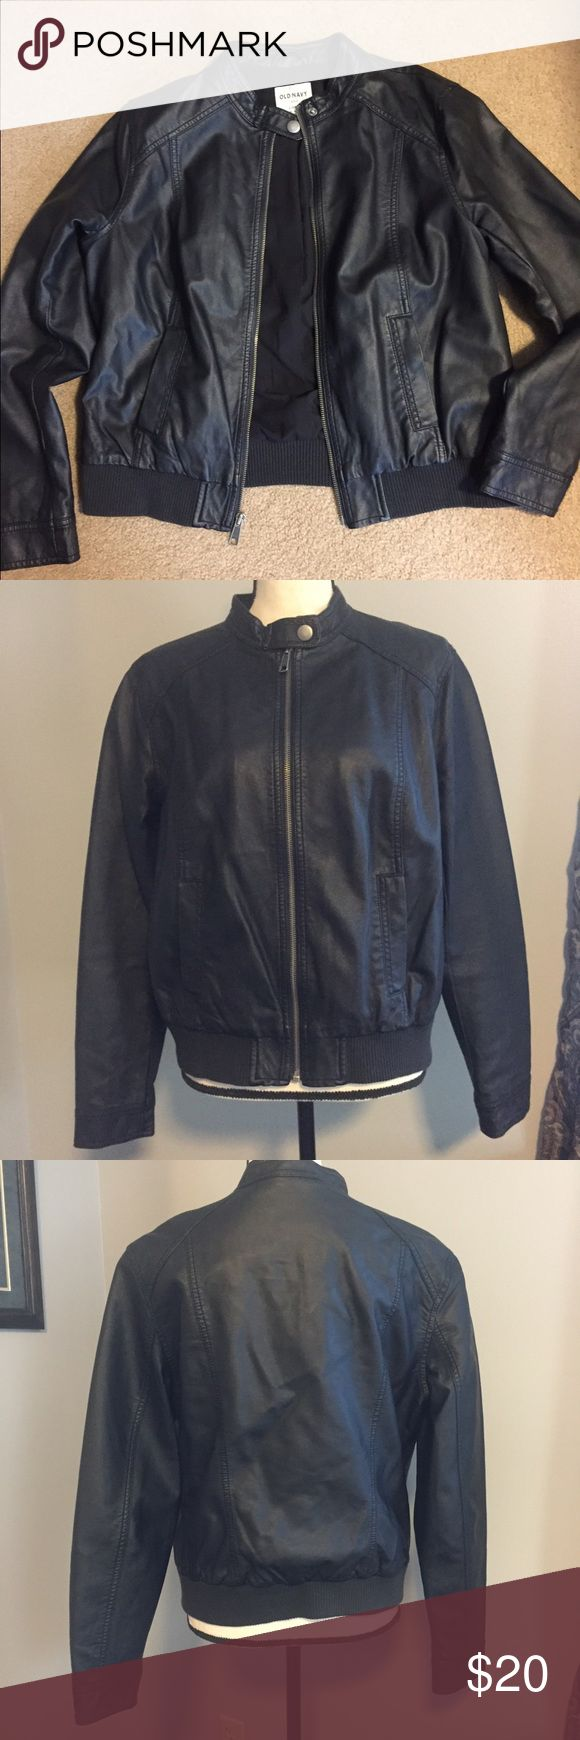 Old Navy faux leather jacket Like new, barely worn. Very soft, looks like real leather. Old Navy Jackets & Coats